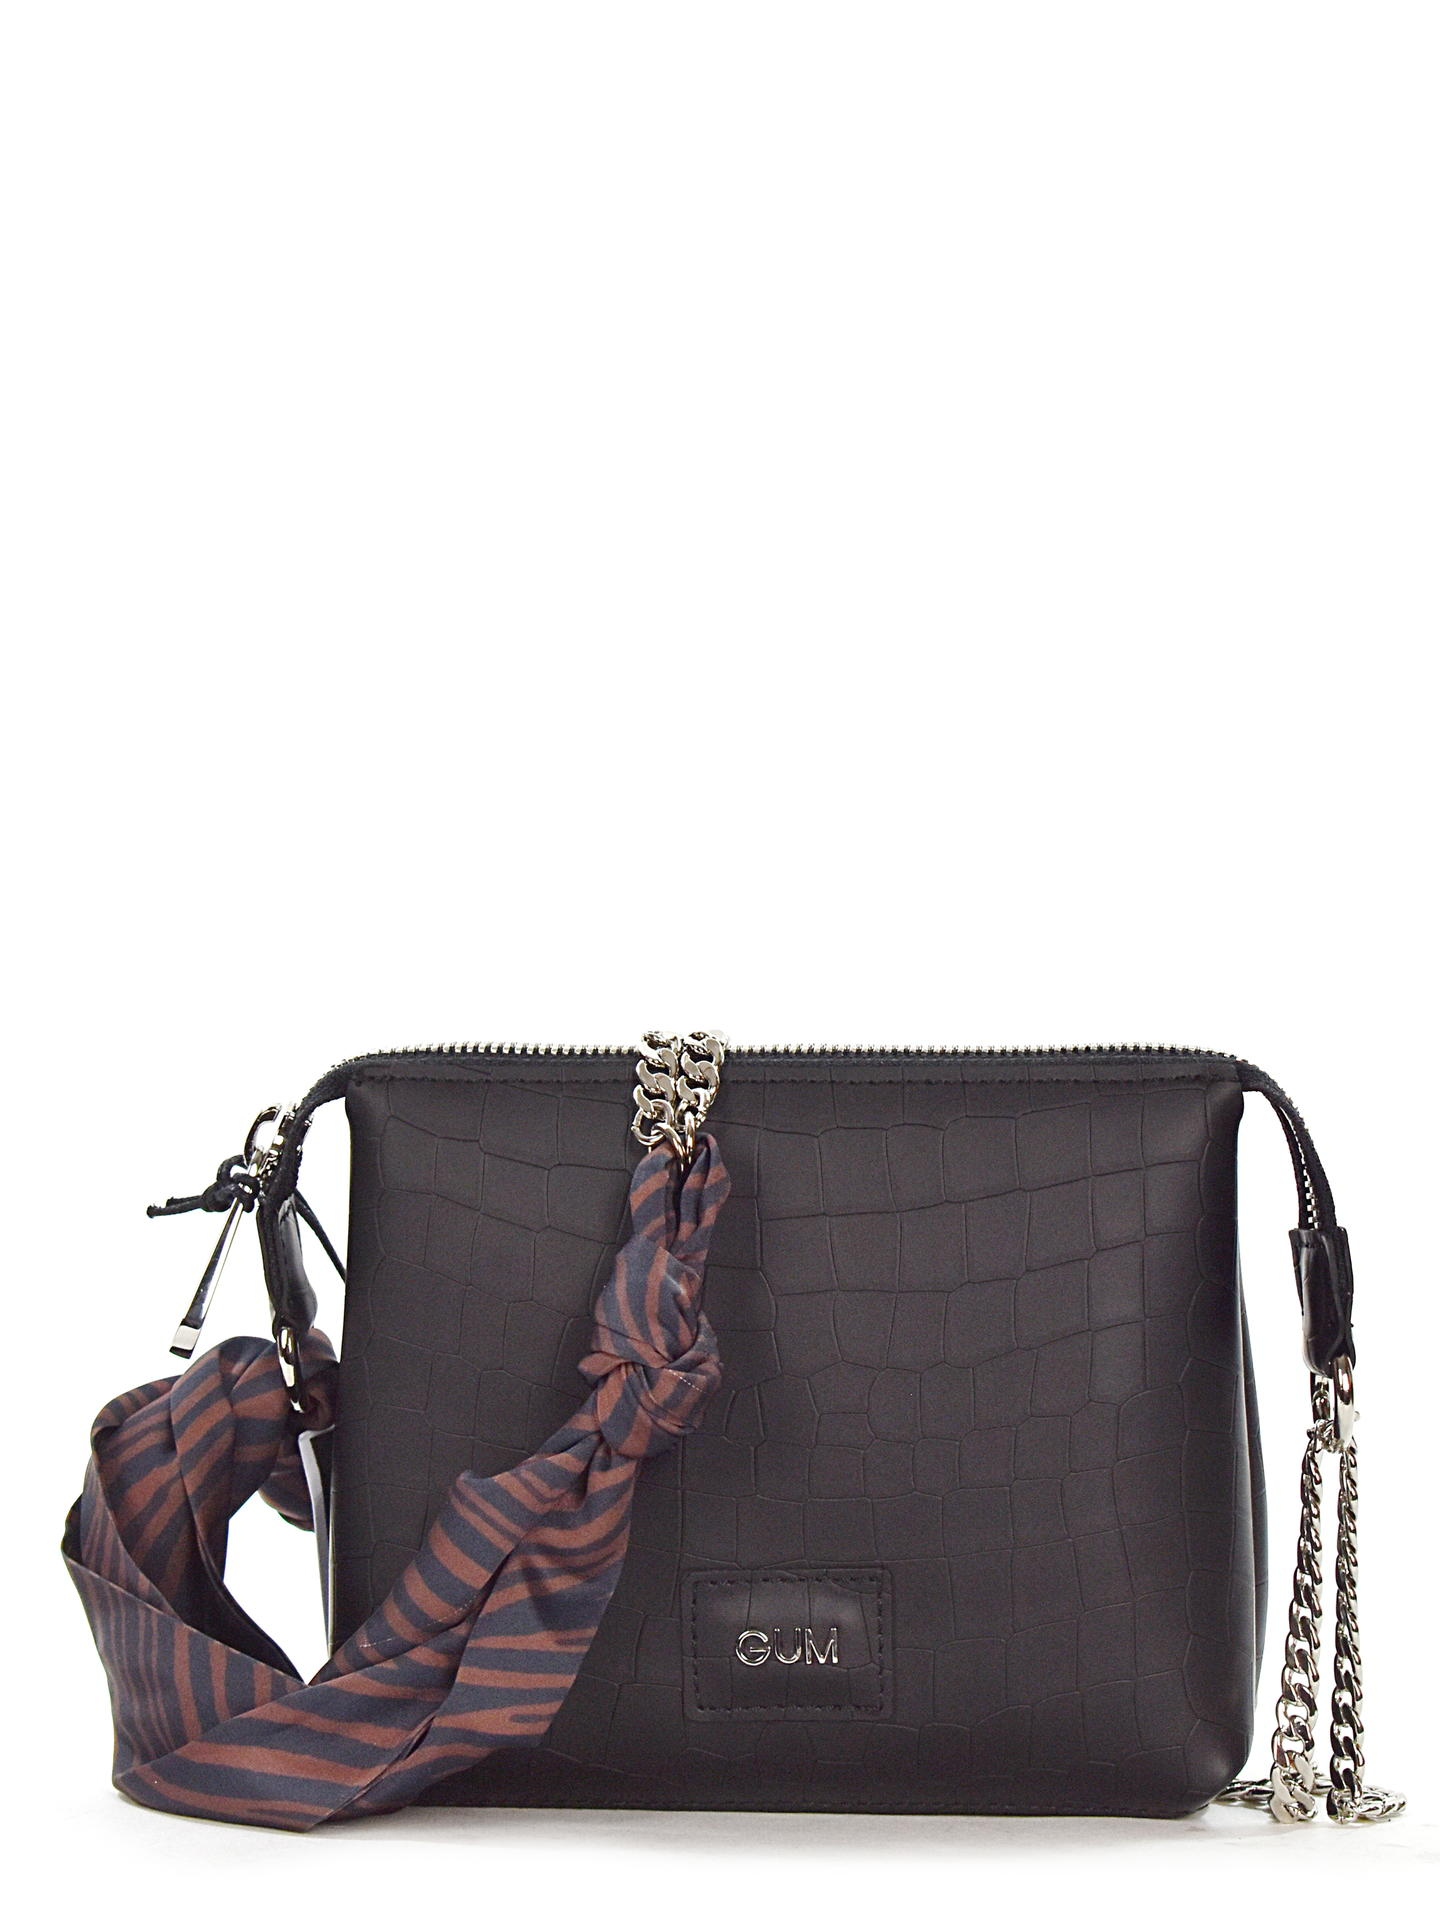 BORSA GUM BY GIANNI CHIARINI 7898JONES NERO